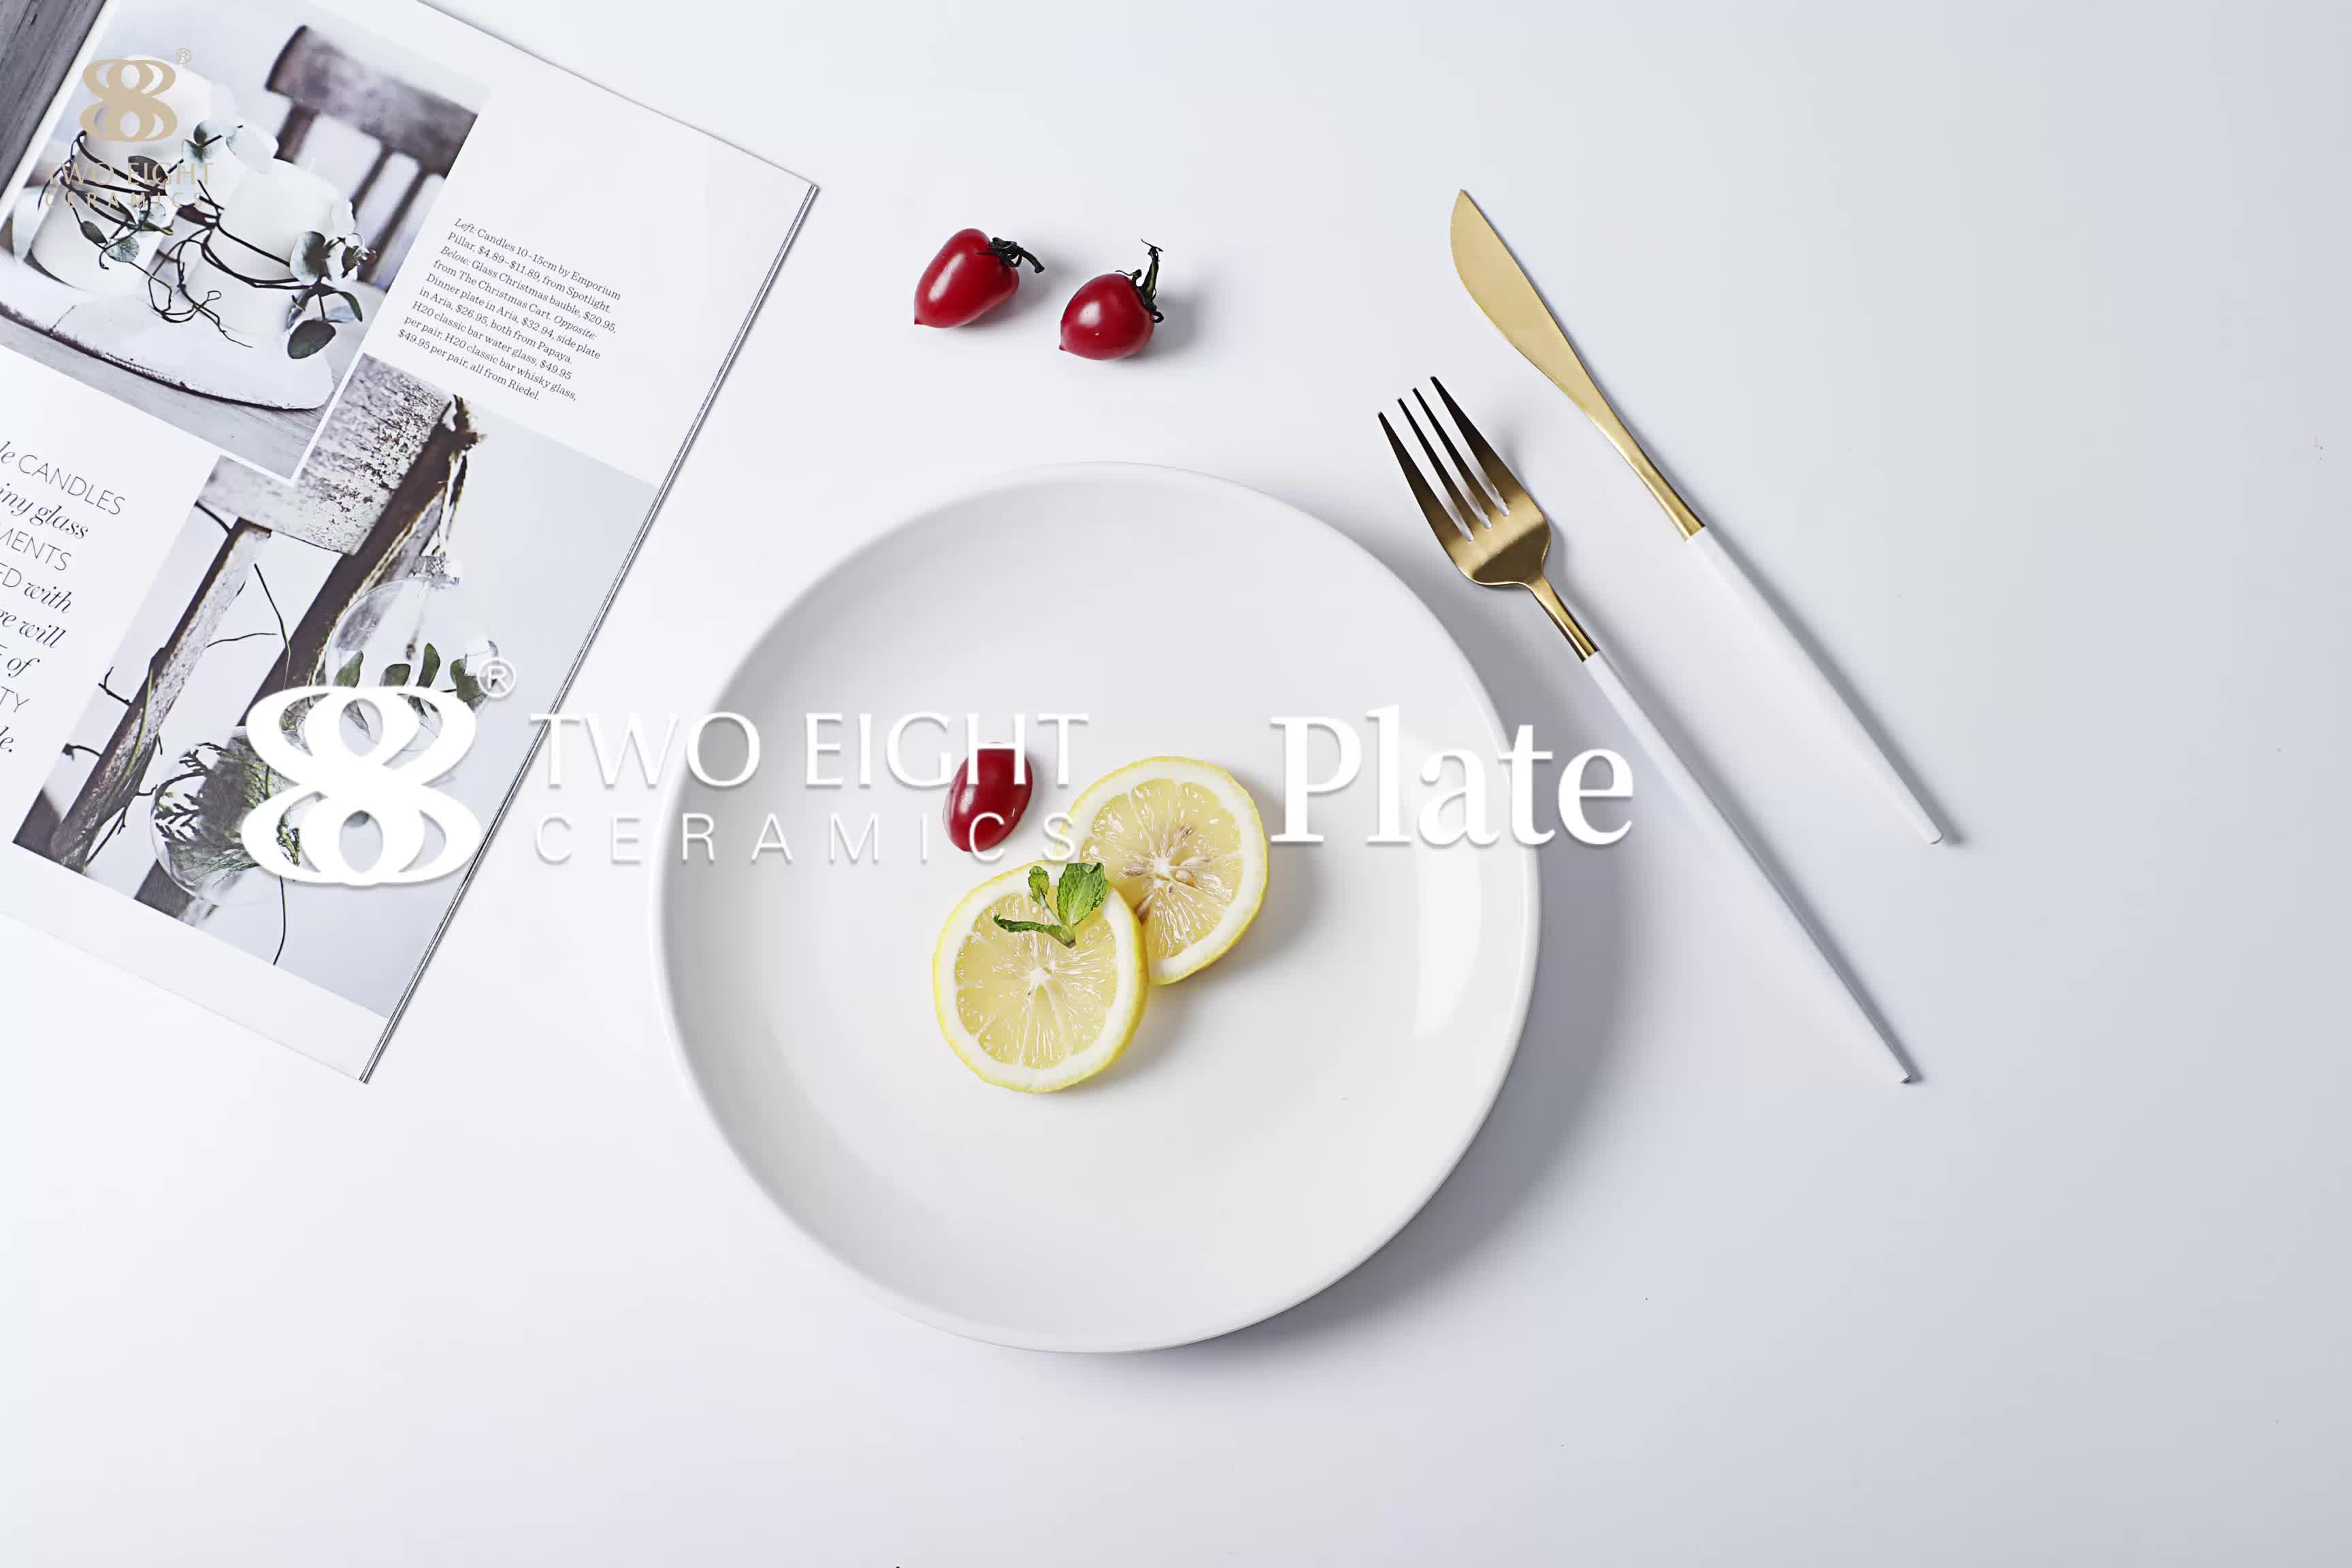 Top Sale Fashionable White  chinaware Stable Hotel  B&B  Plate, Restaurant Wedding Porcelain Dinnerware Plate Sets~